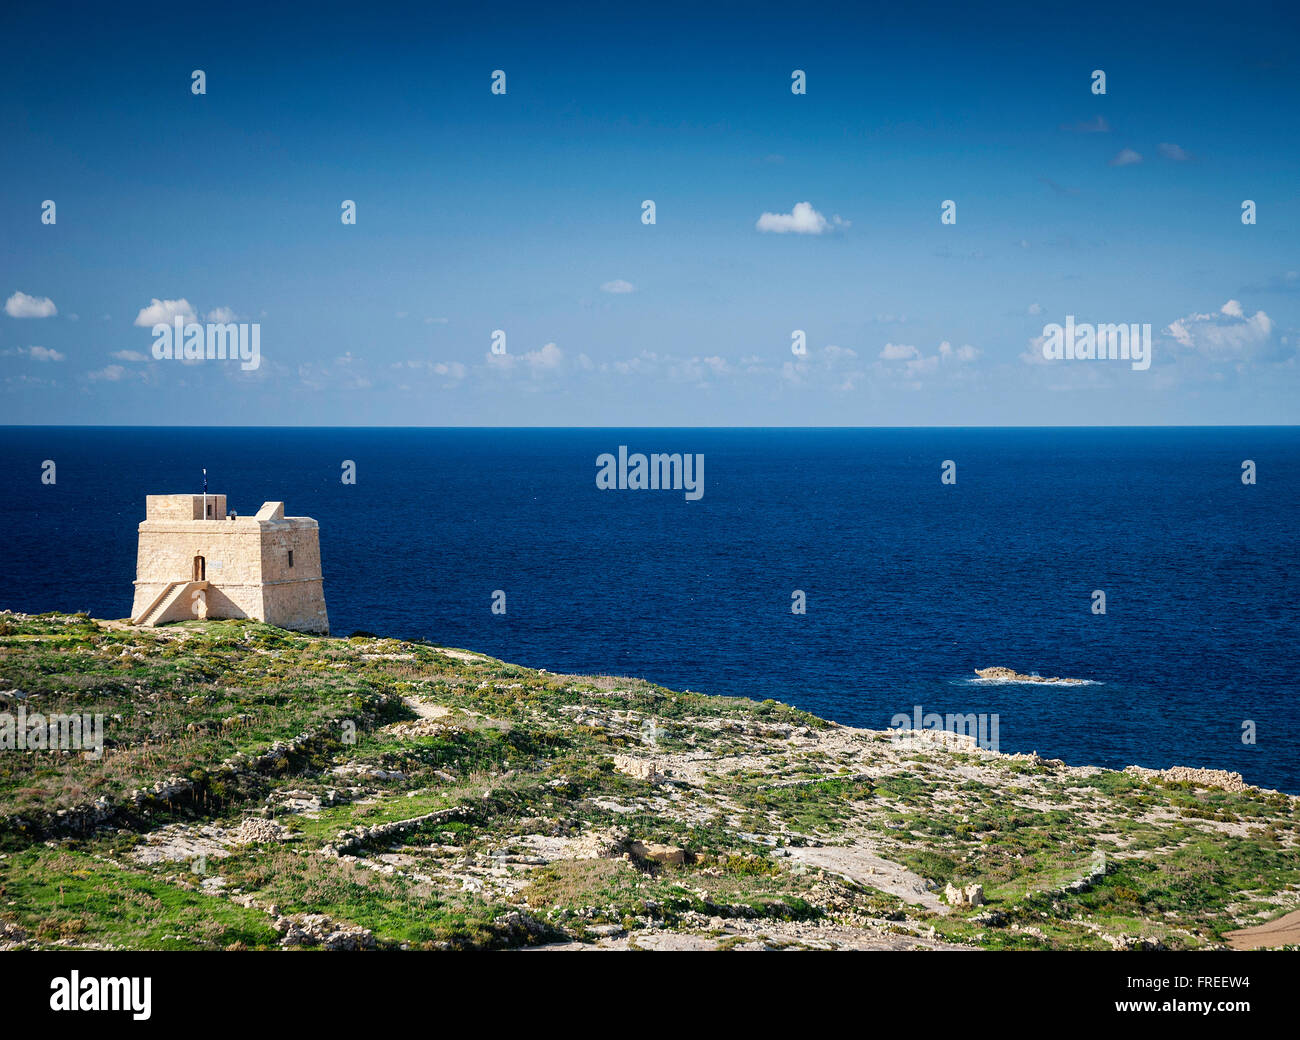 fort and Mediterranean coast view of gozo island in malta - Stock Image